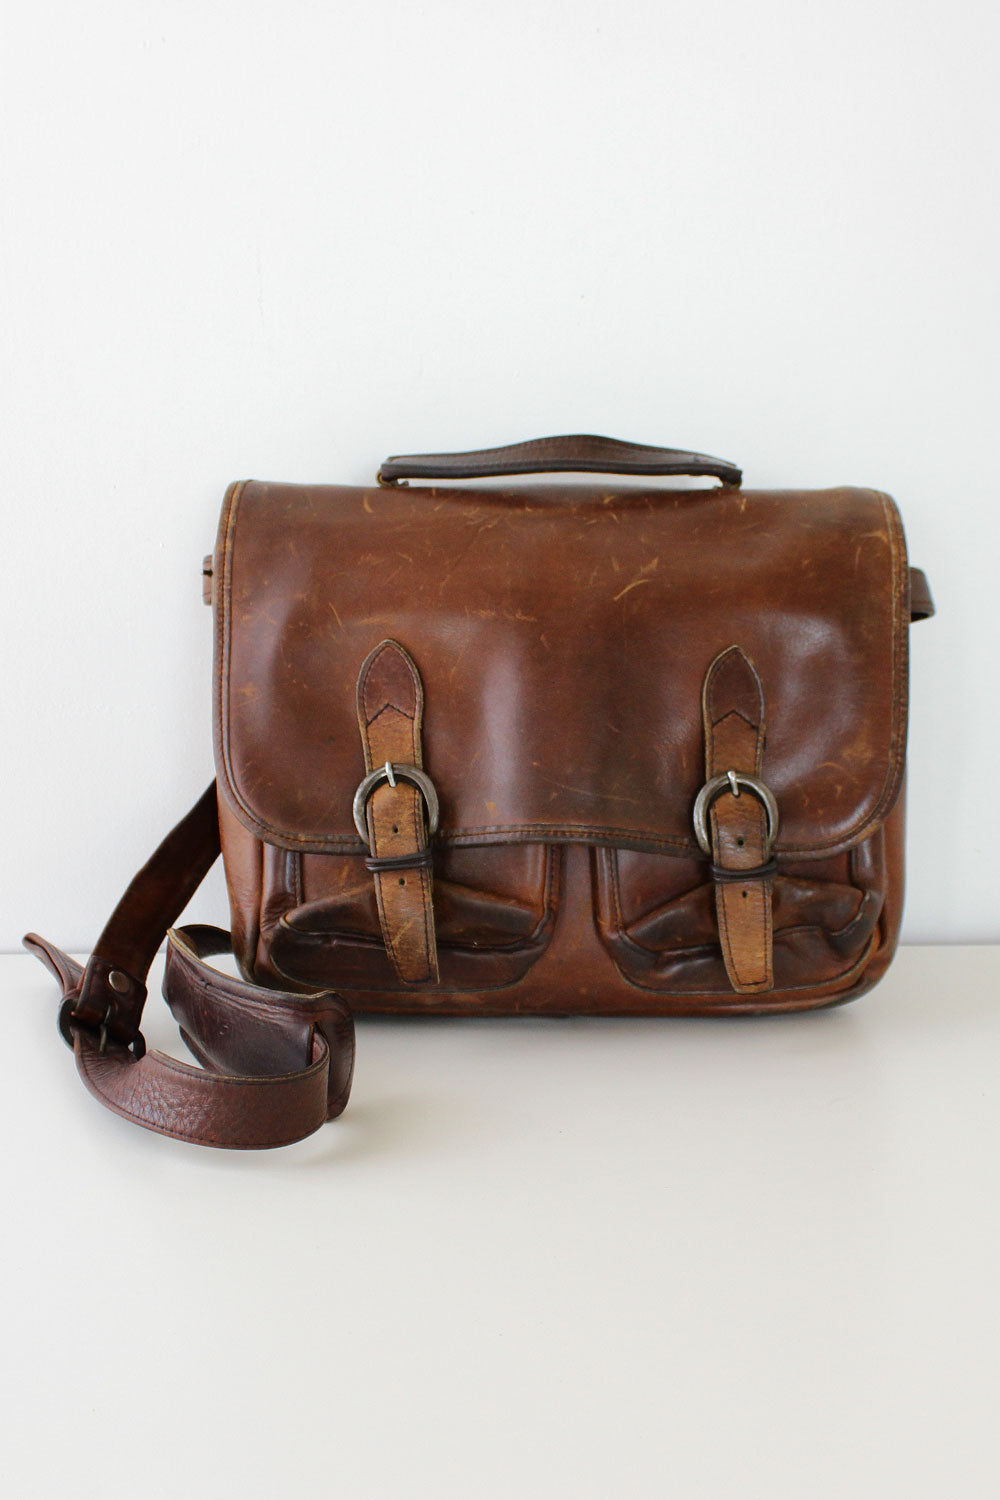 Bleecker Street Messenger Bag